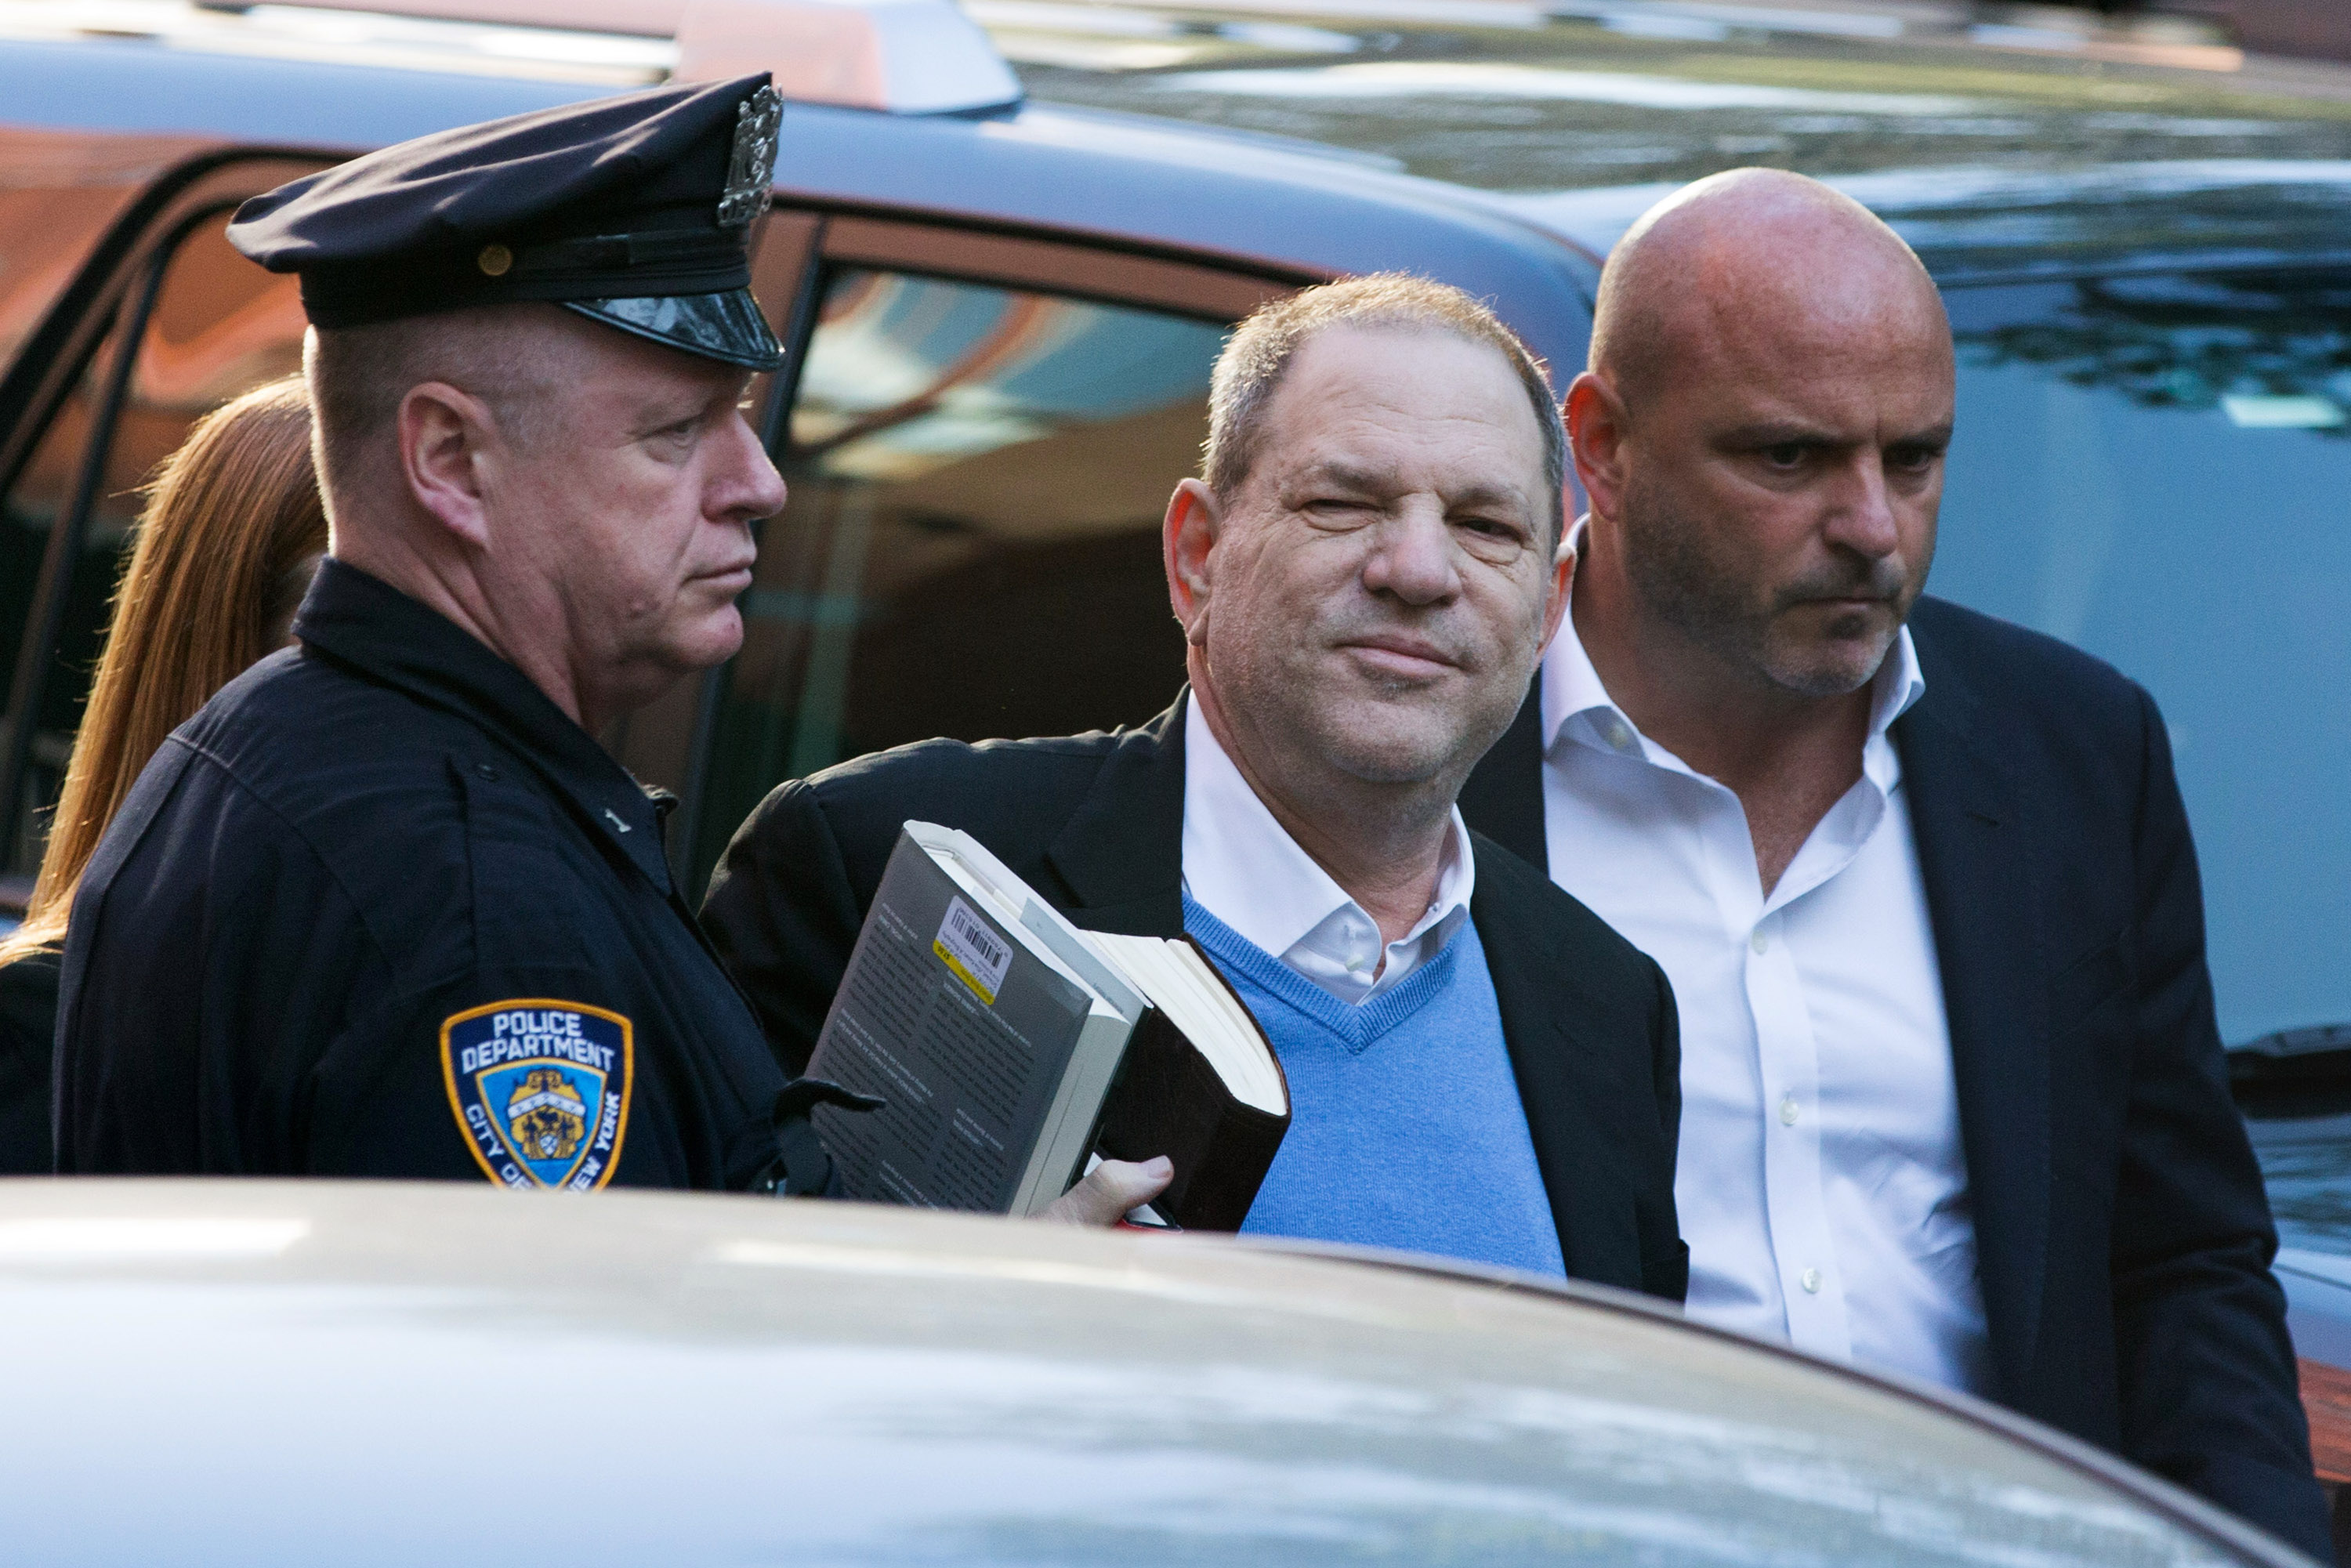 Harvey Weinstein turns himself in to the New York Police Department's First Precinct after be served with criminal charges by the Manhattan District Attorney's office on May 25, 2018 in New York City. The former movie producer faces charges in connection with accusations made by aspiring actress Lucia Evans who has said that Weinstein forced her to perform oral sex on him in his Manhattan office in 2004. Weinstein (66) has been accused by dozens of other women of forcing them into sexual acts using both pressure and threats. The revelations of the his behavior helped to spawn the global #MeToo movement.